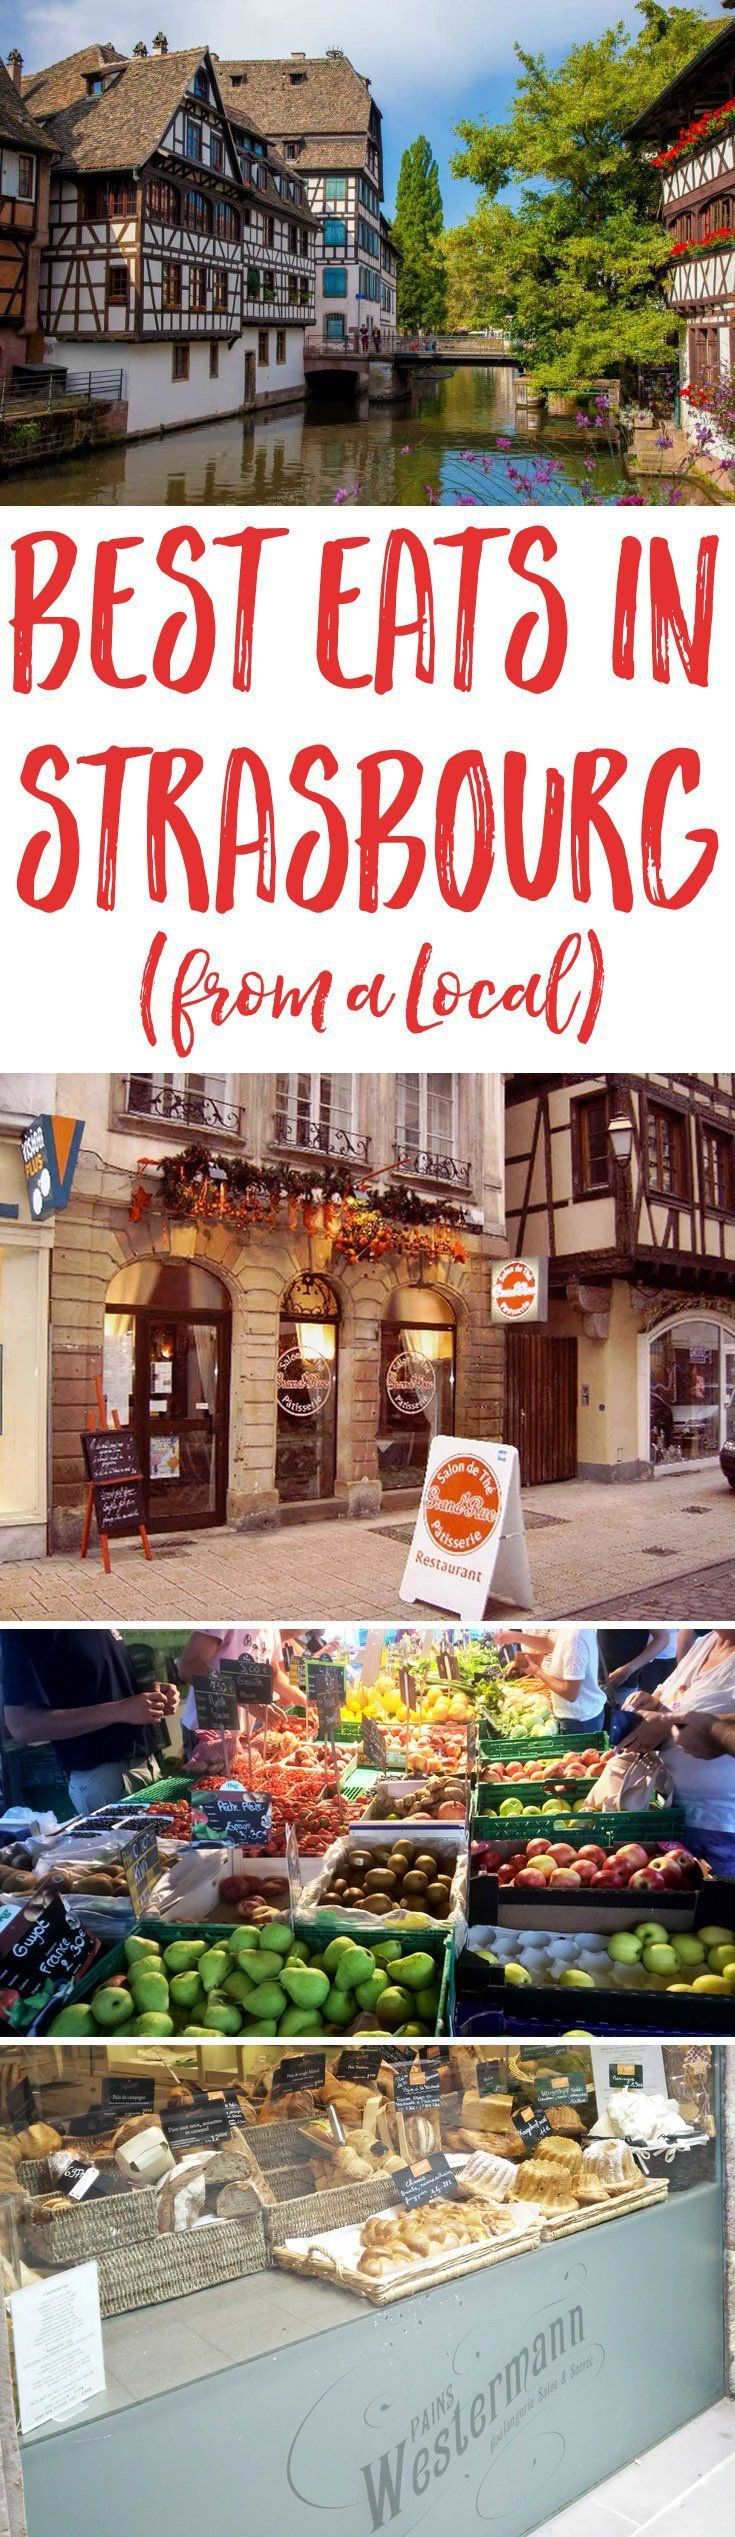 Planning a trip to the amazingly charming capital of Alsace? Don't miss this selection of the best eats in Strasbourg to wine and dine like a local!